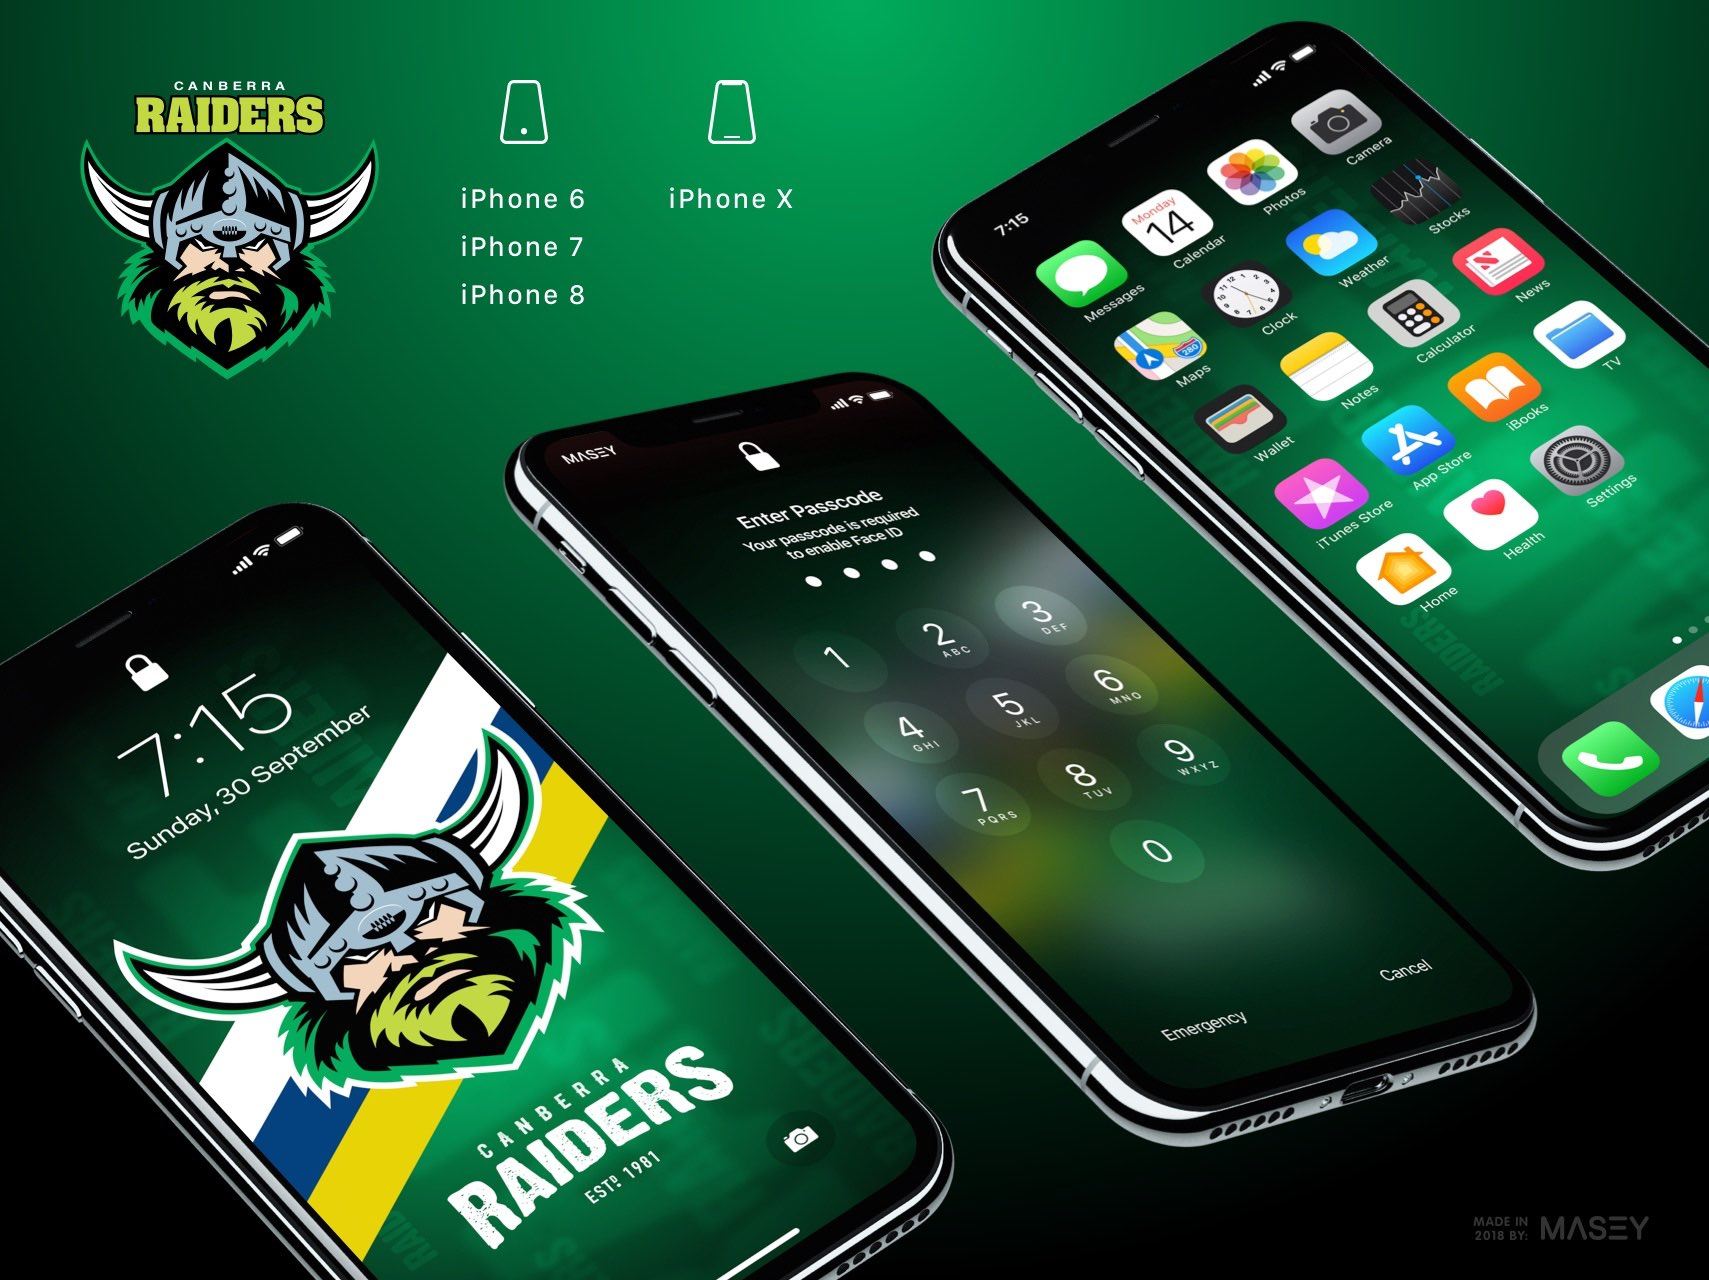 Canberra Raiders iPhone Wallpaper